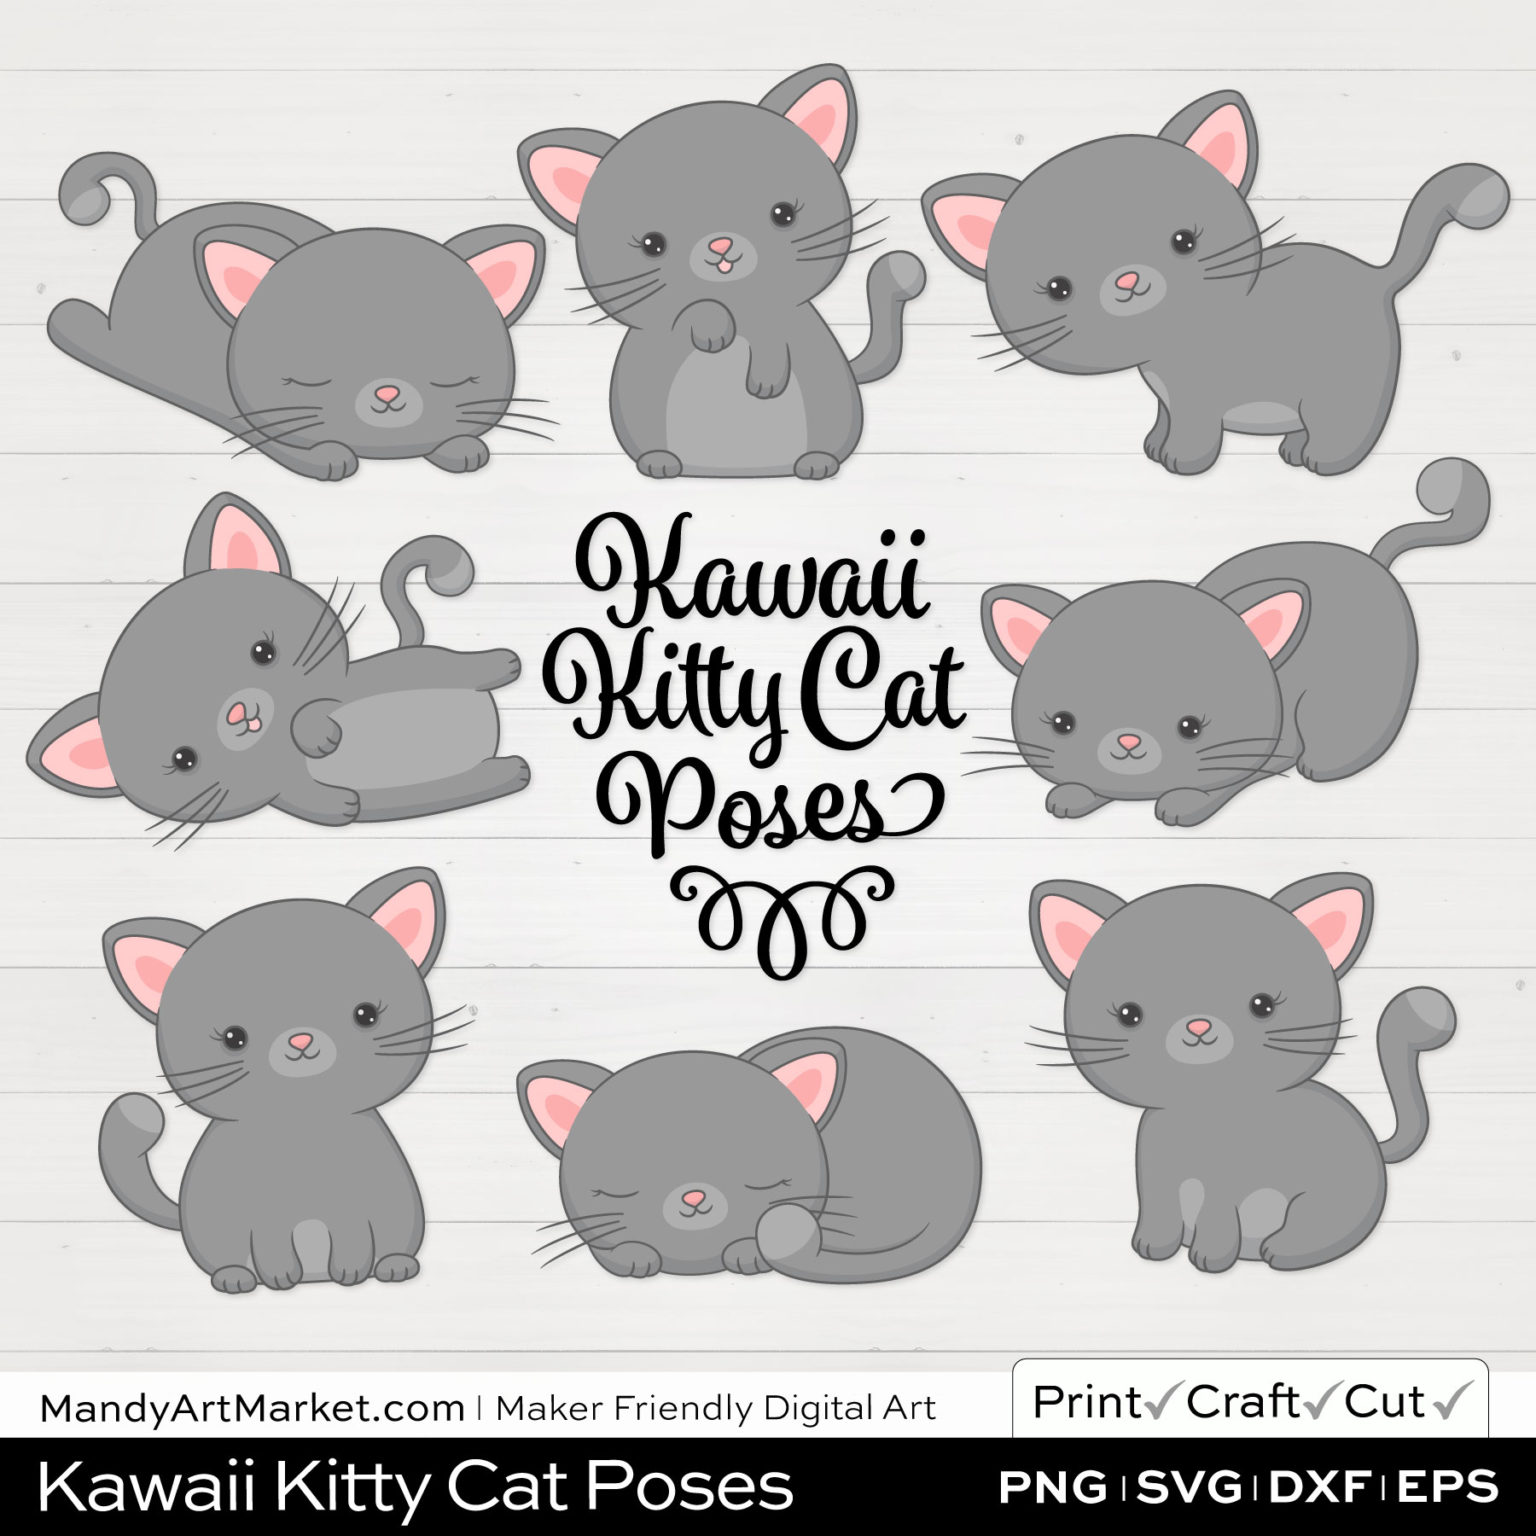 Dolphin Gray Kawaii Kitty Cat Poses Clipart on White Background